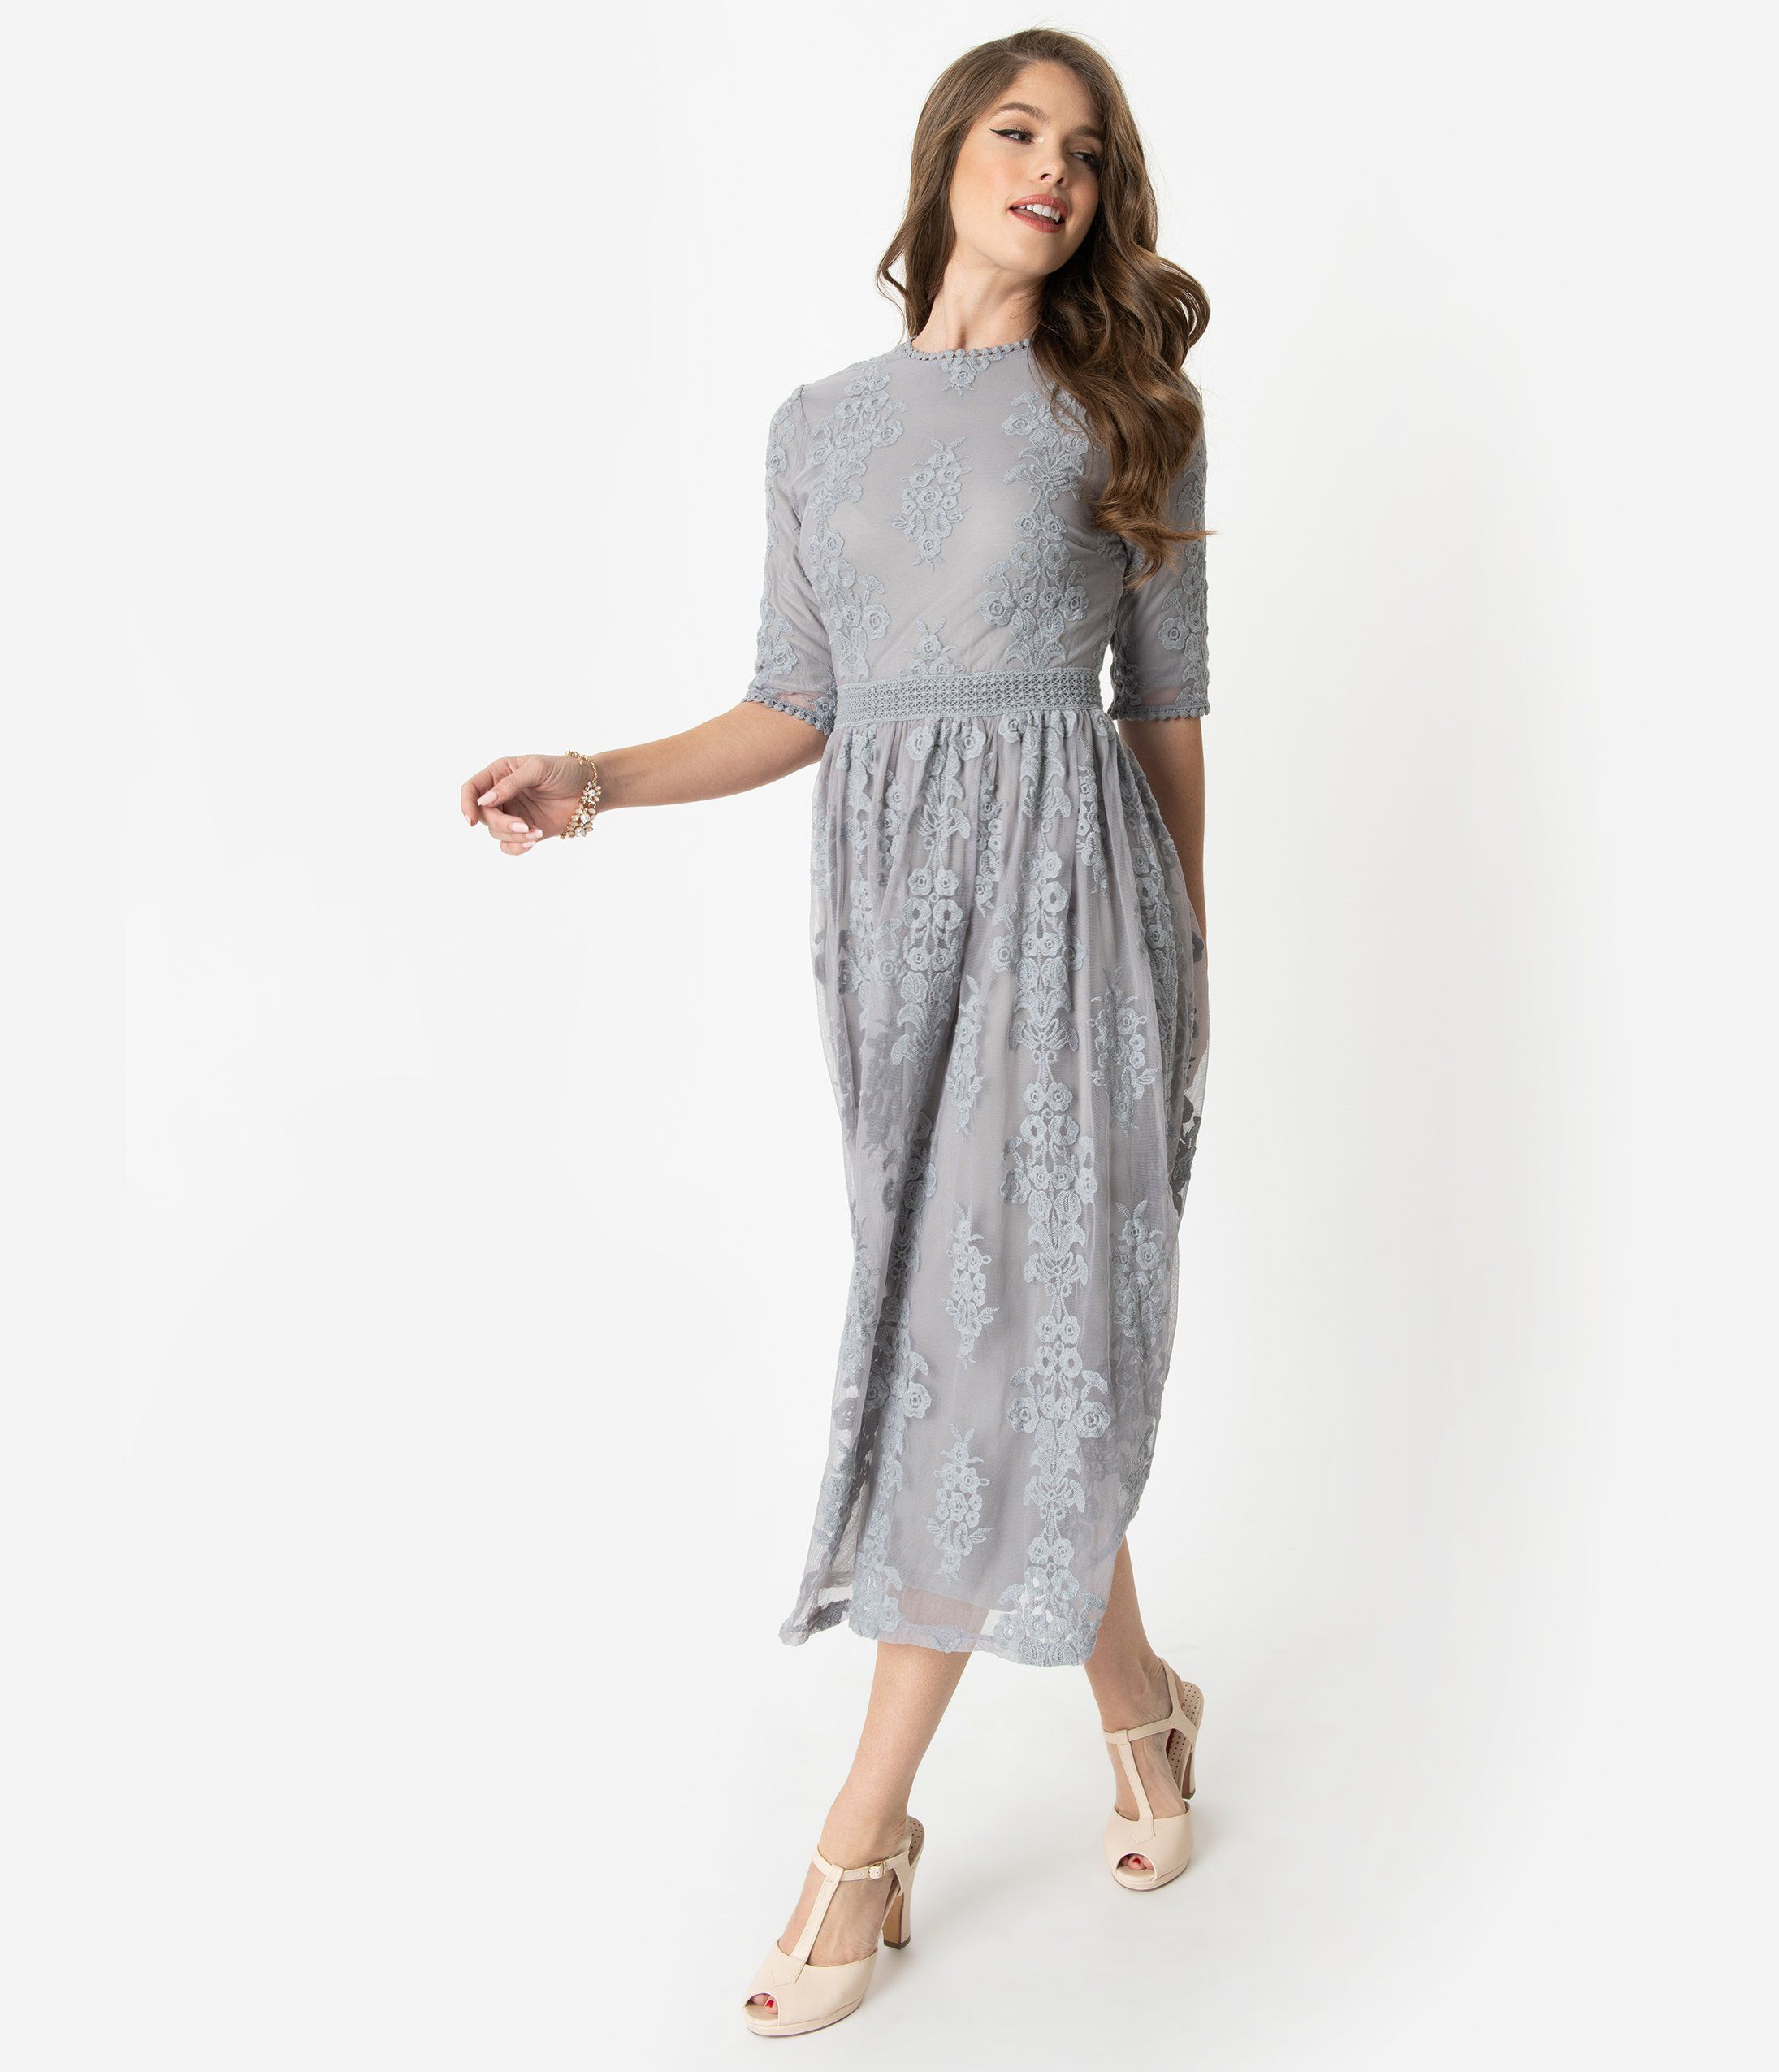 Vintage Style Sage Blue Embroidered Lace Modest Midi Dress Unique Vintage Modest Midi Dress Lace Dress With Sleeves Grey Midi Dress [ 2550 x 2190 Pixel ]